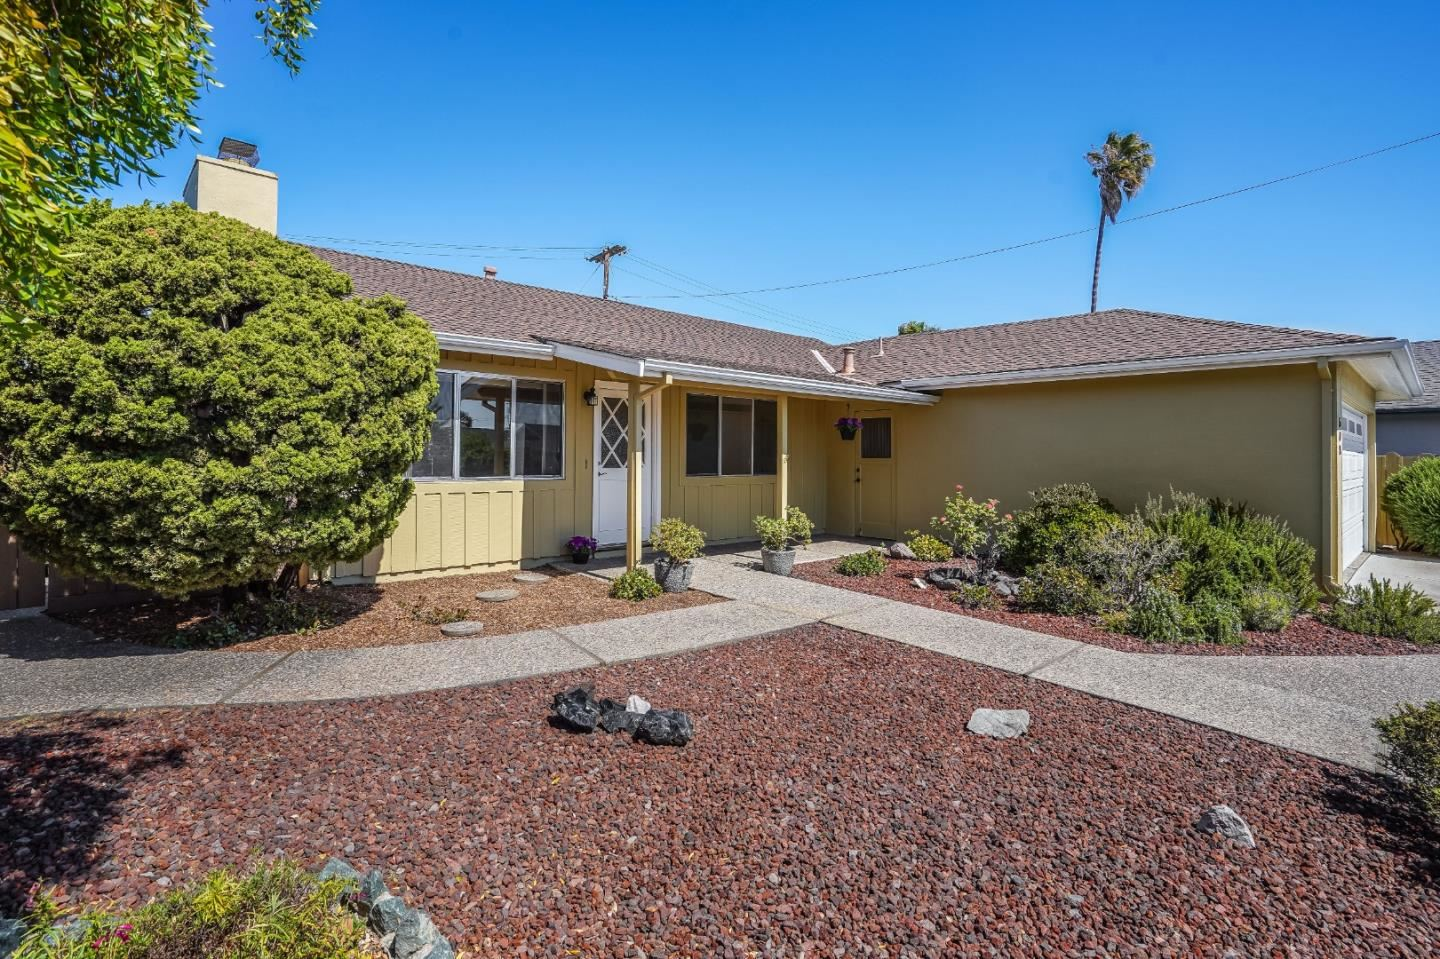 Photo for 508 Mountain View Avenue, BELMONT, CA 94002 (MLS # ML81851959)